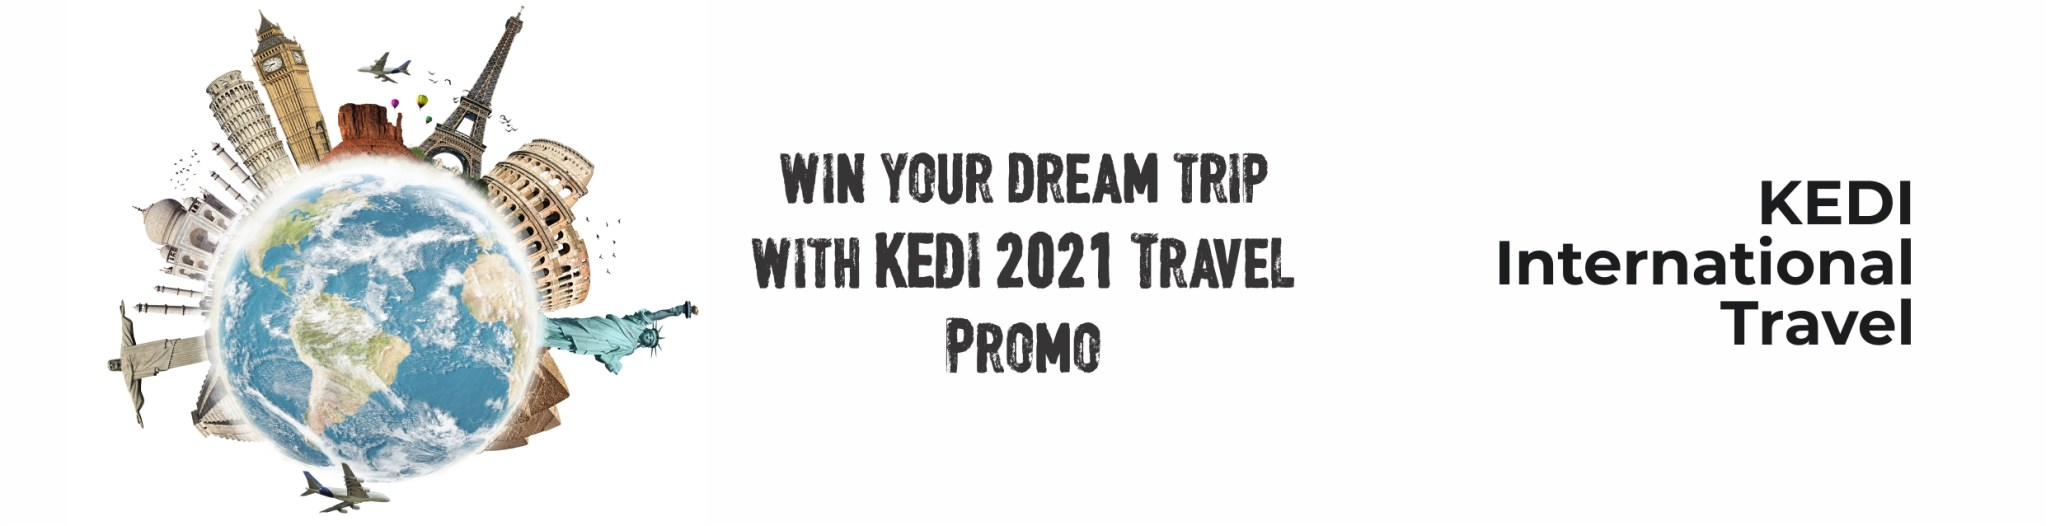 EXPLORE THE WORLD WITH KEDI FREE INTERNATIONAL TRAVELS